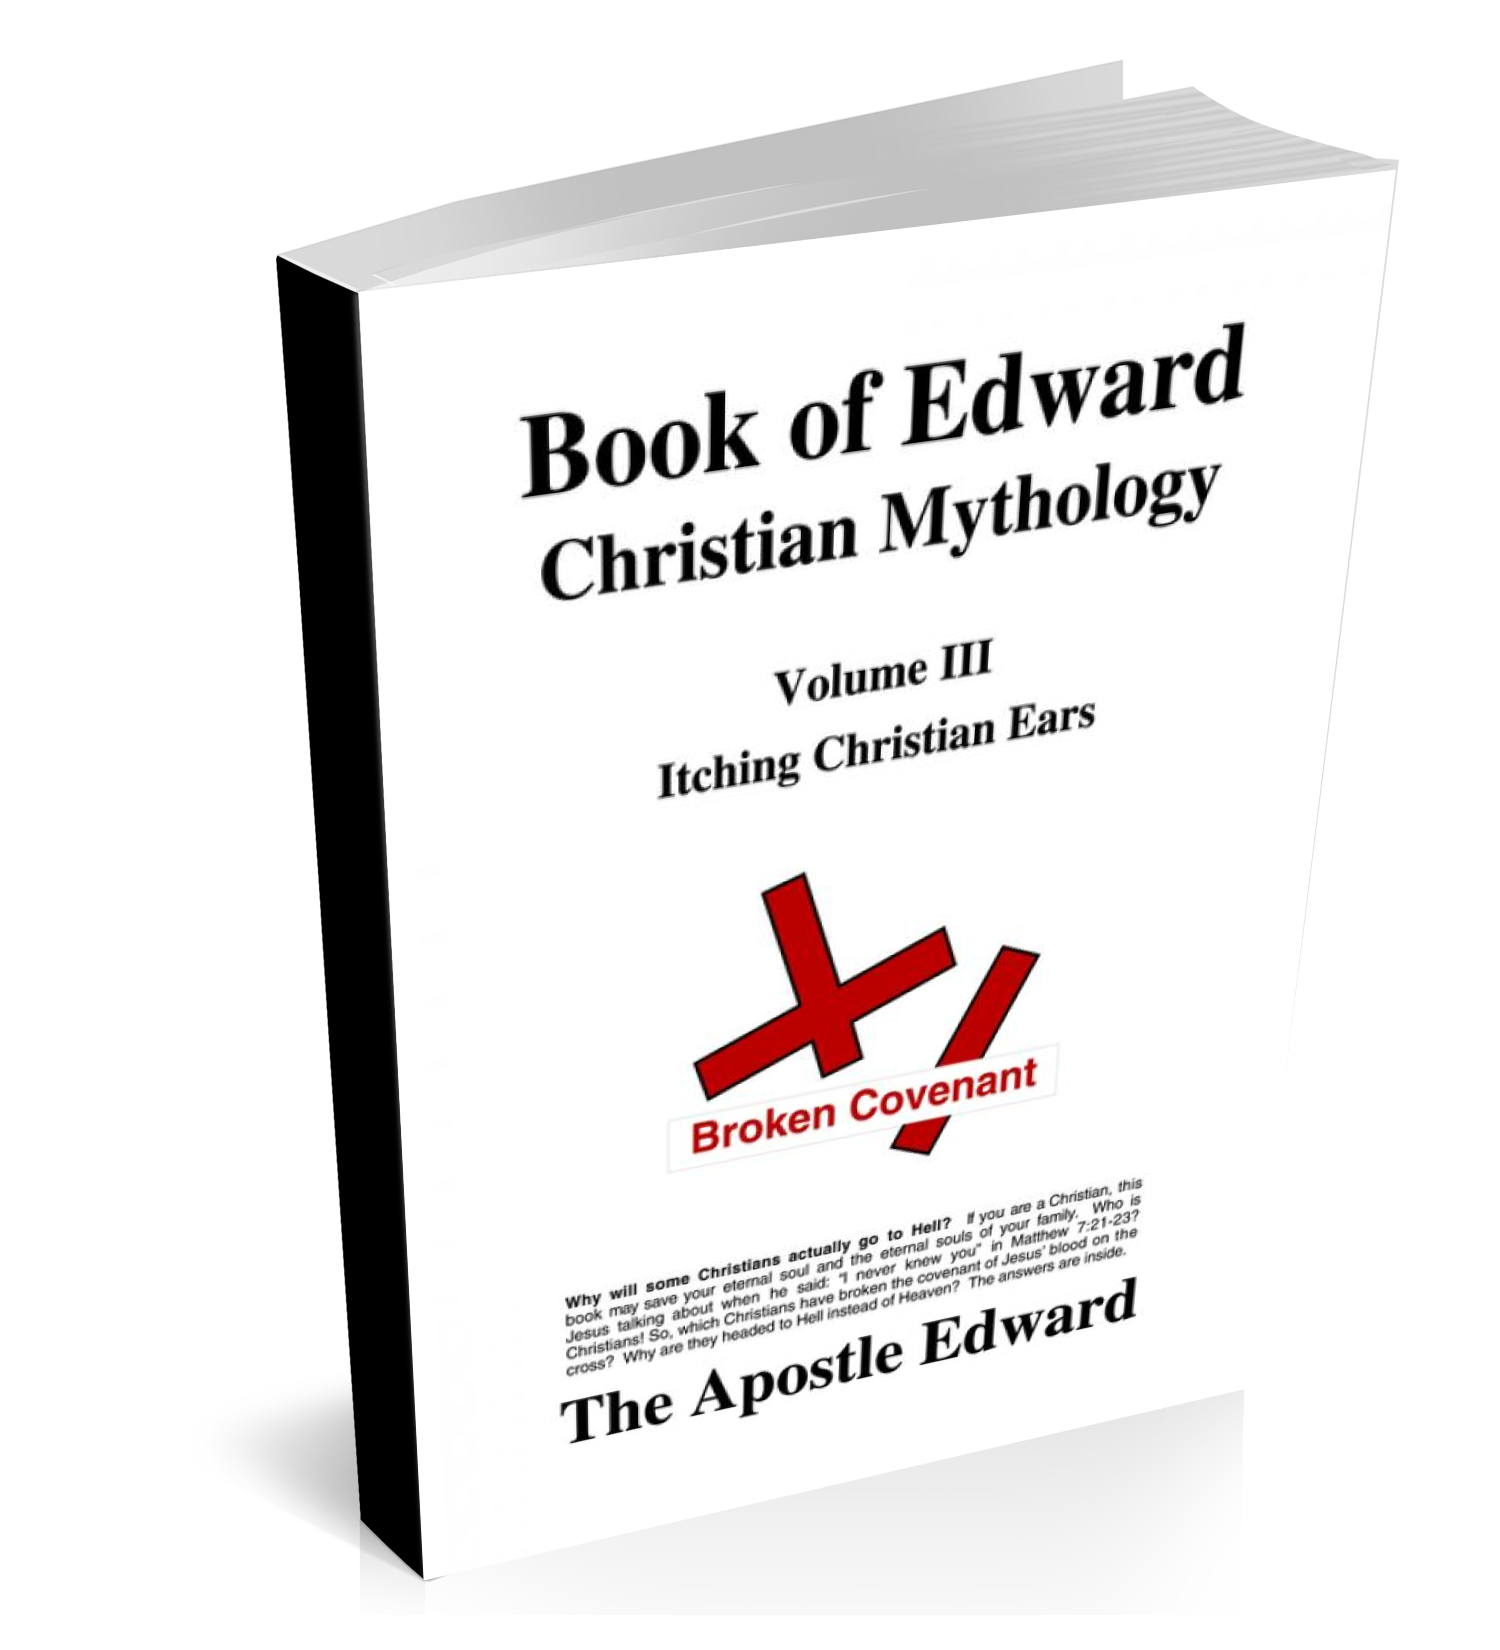 Image of Apostle Edward's Book of Edward Volume III